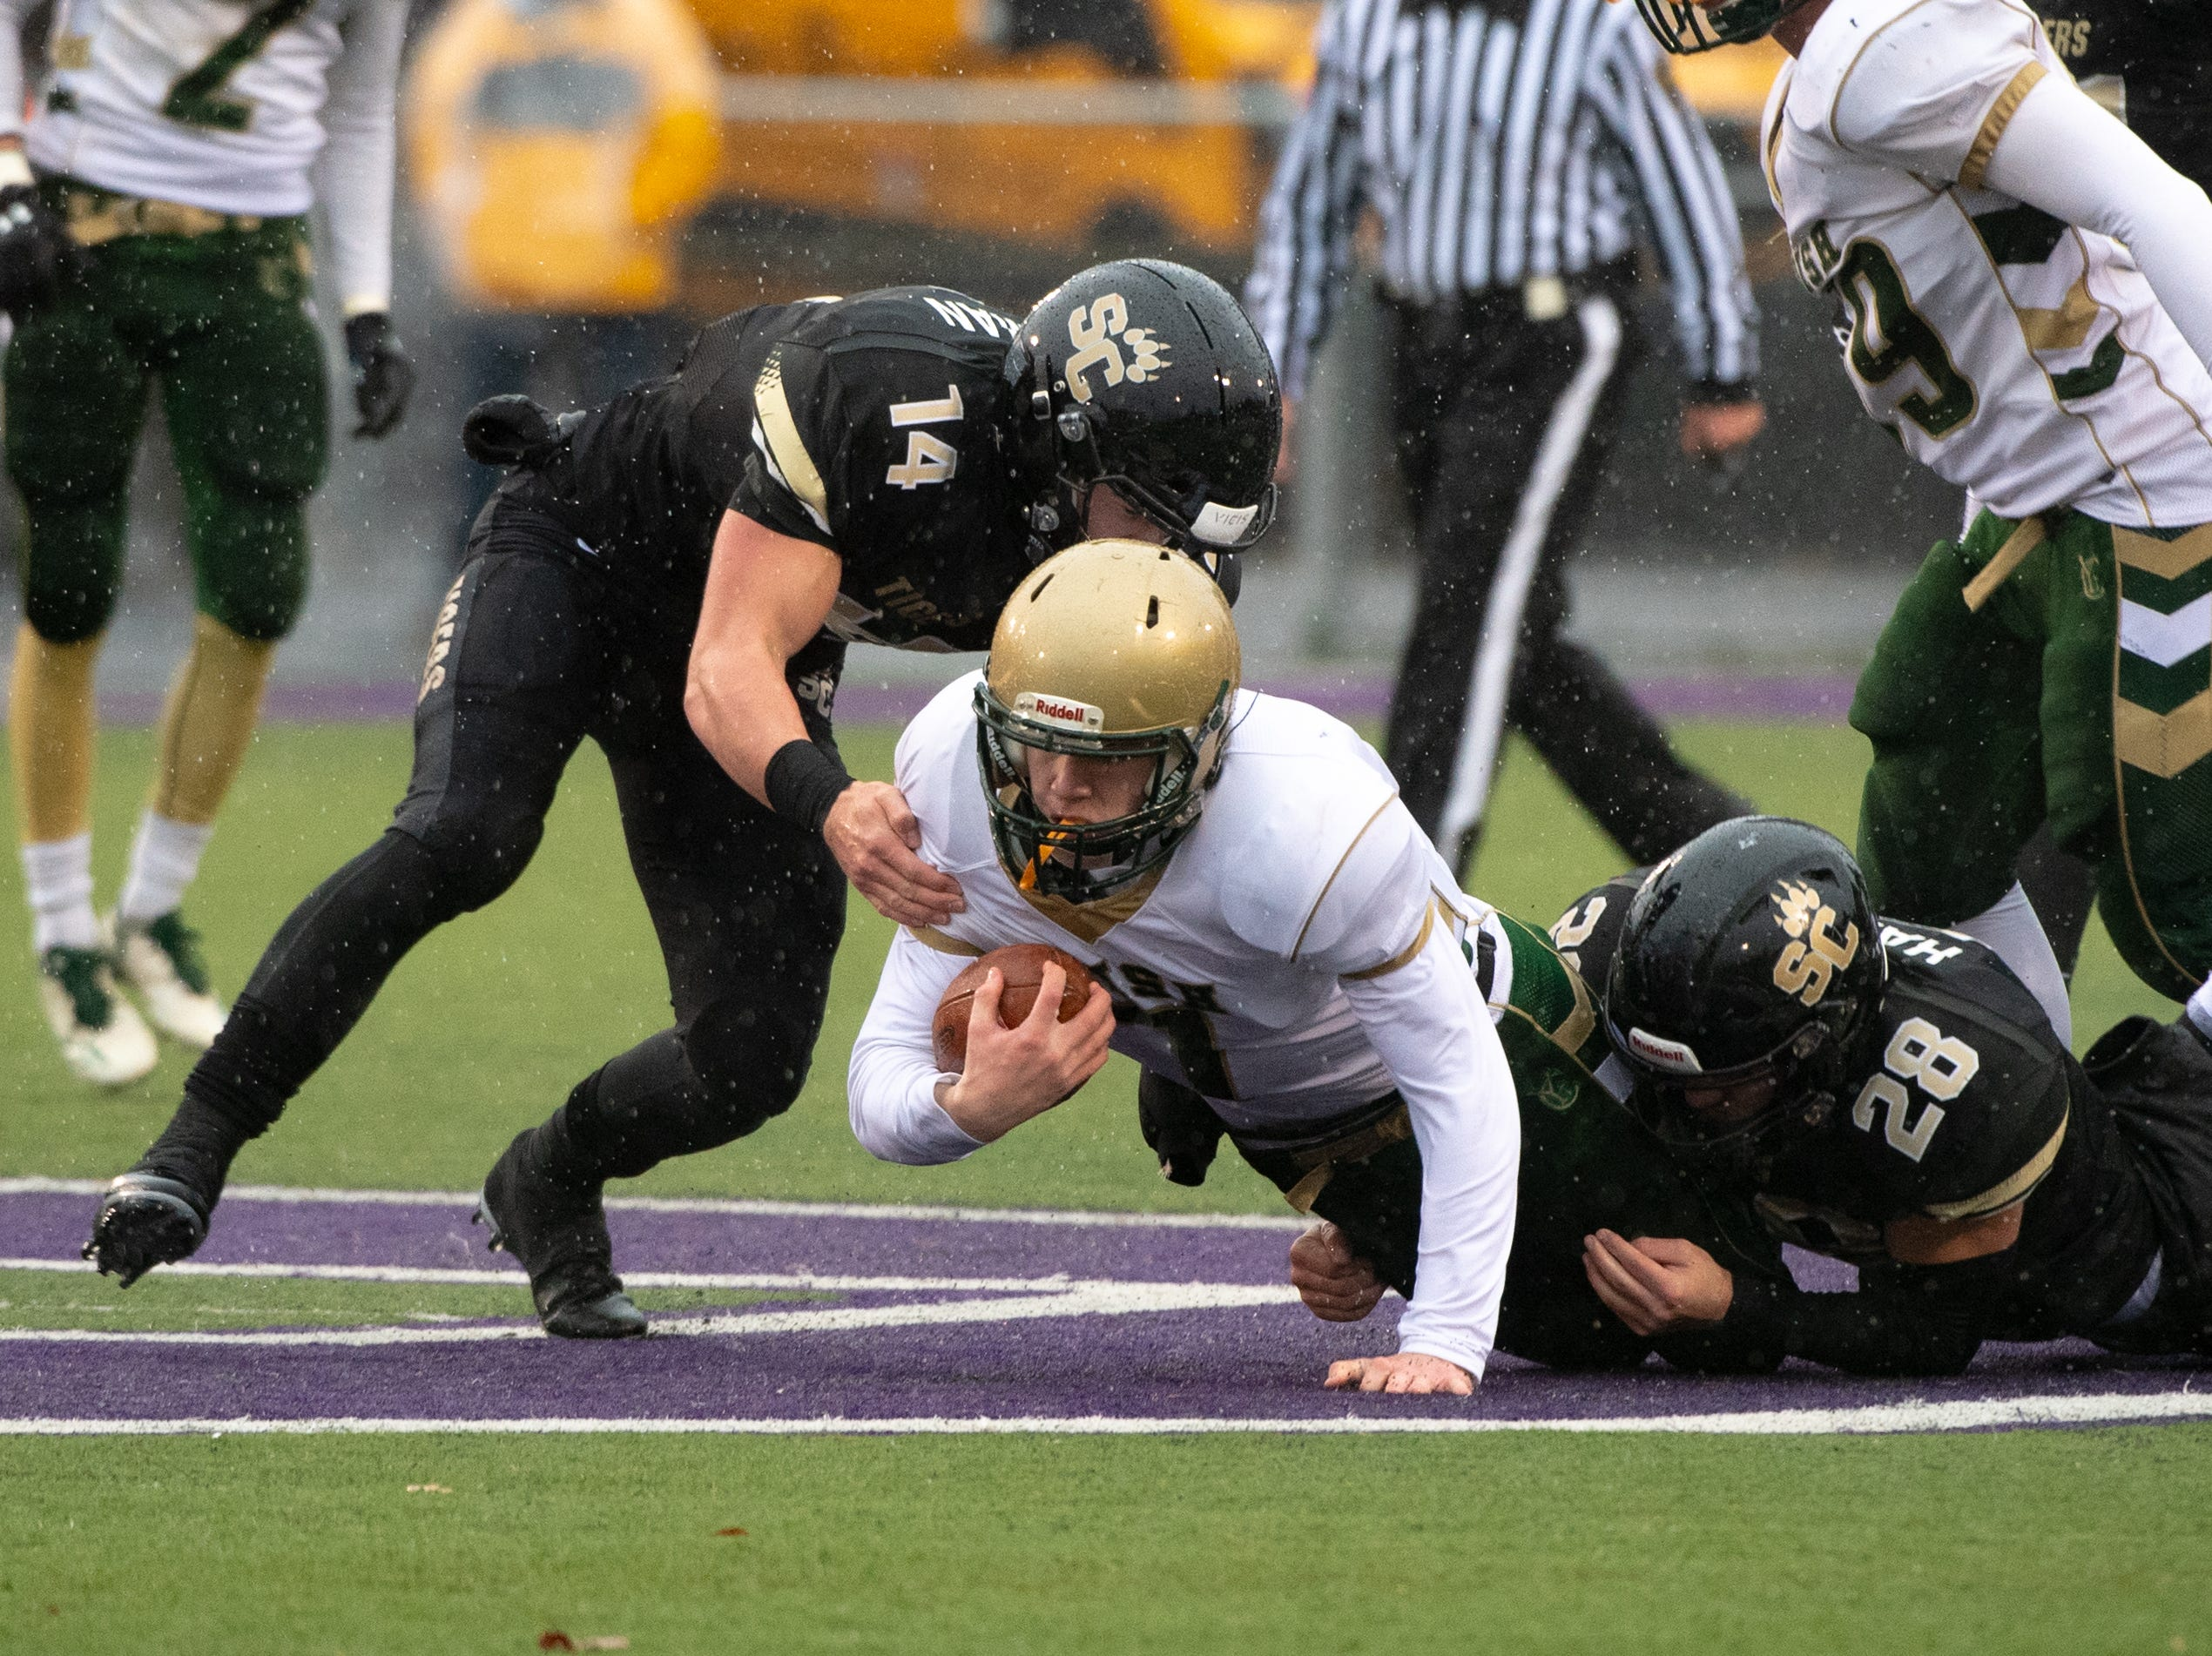 Mitchell Galentine (7) tries to get every yard he can during the state quarter-finals game between York Catholic and Southern Columbia at Shamokin Area High School, November 24, 2018. The Tigers defeated the Irish 56-23.